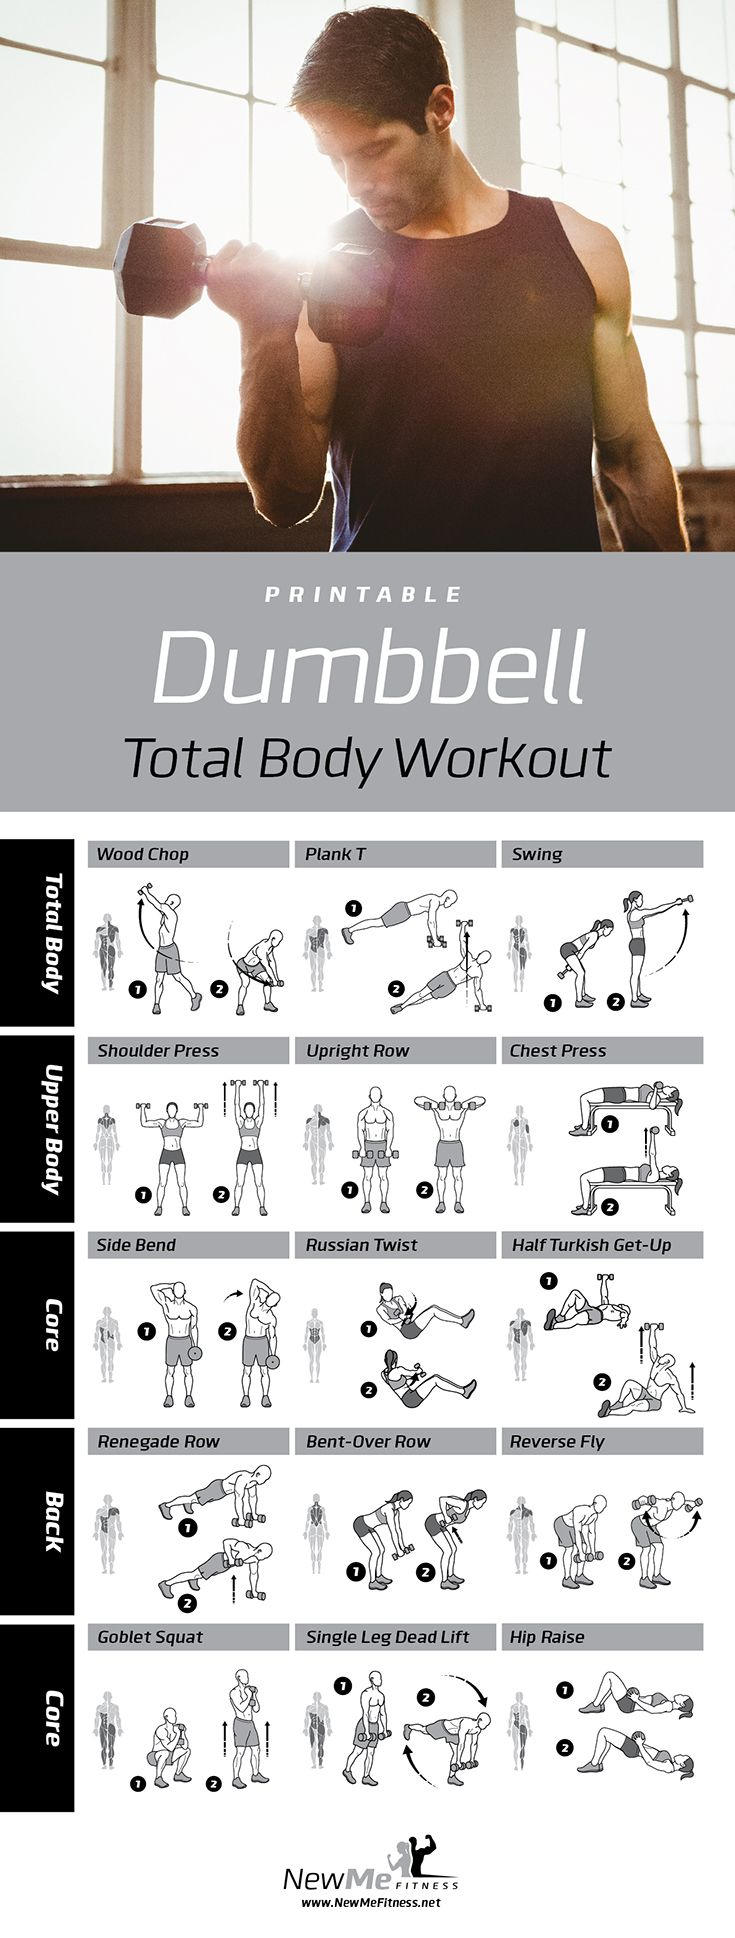 Dumbbell workout for all your major muscle groups. Build your dream body!